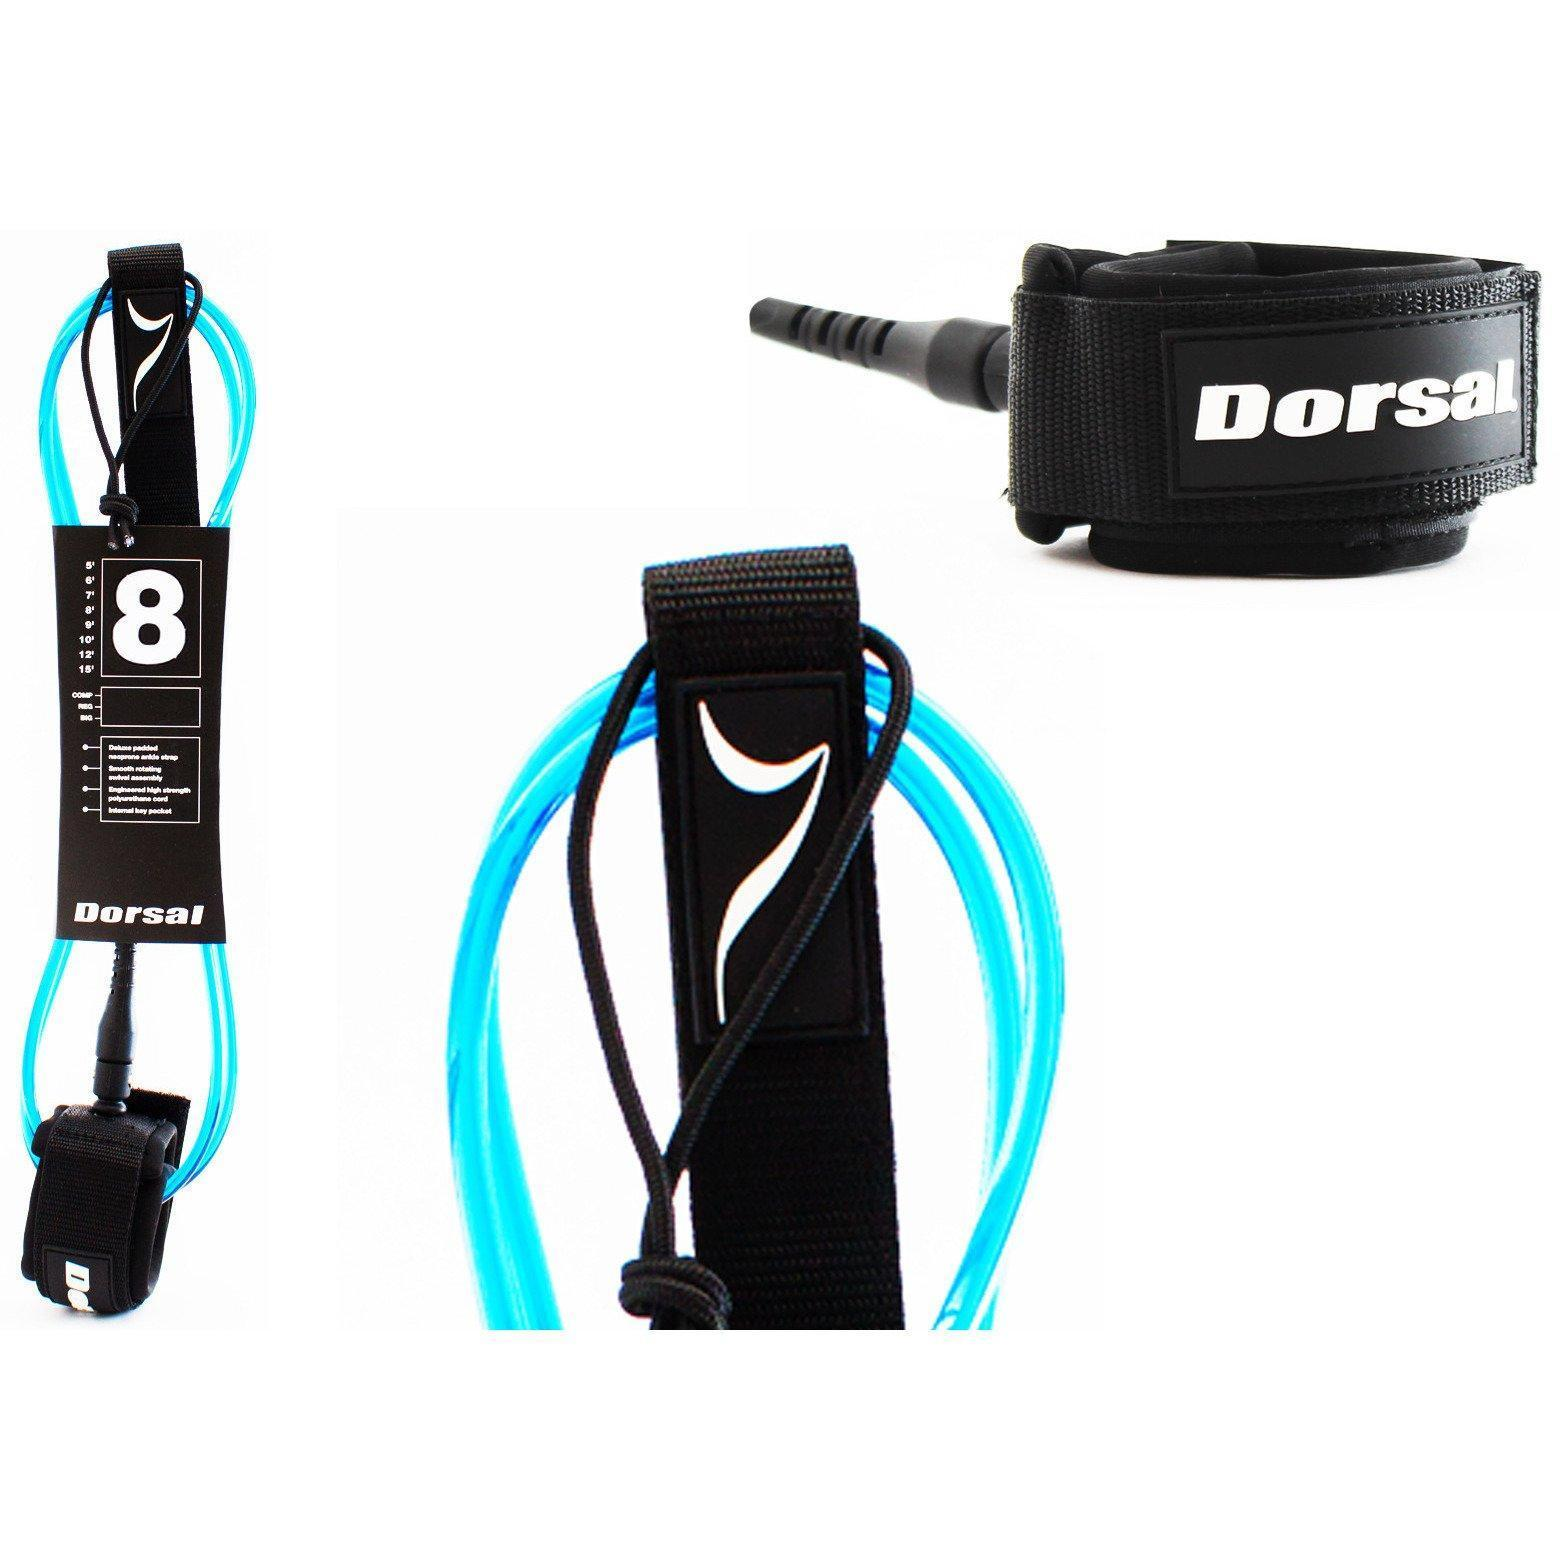 Dorsal Premium Surfboard 6, 7, 8, 9, 10 FT Surf Leash - Blue 8 FT Longboard / Blue